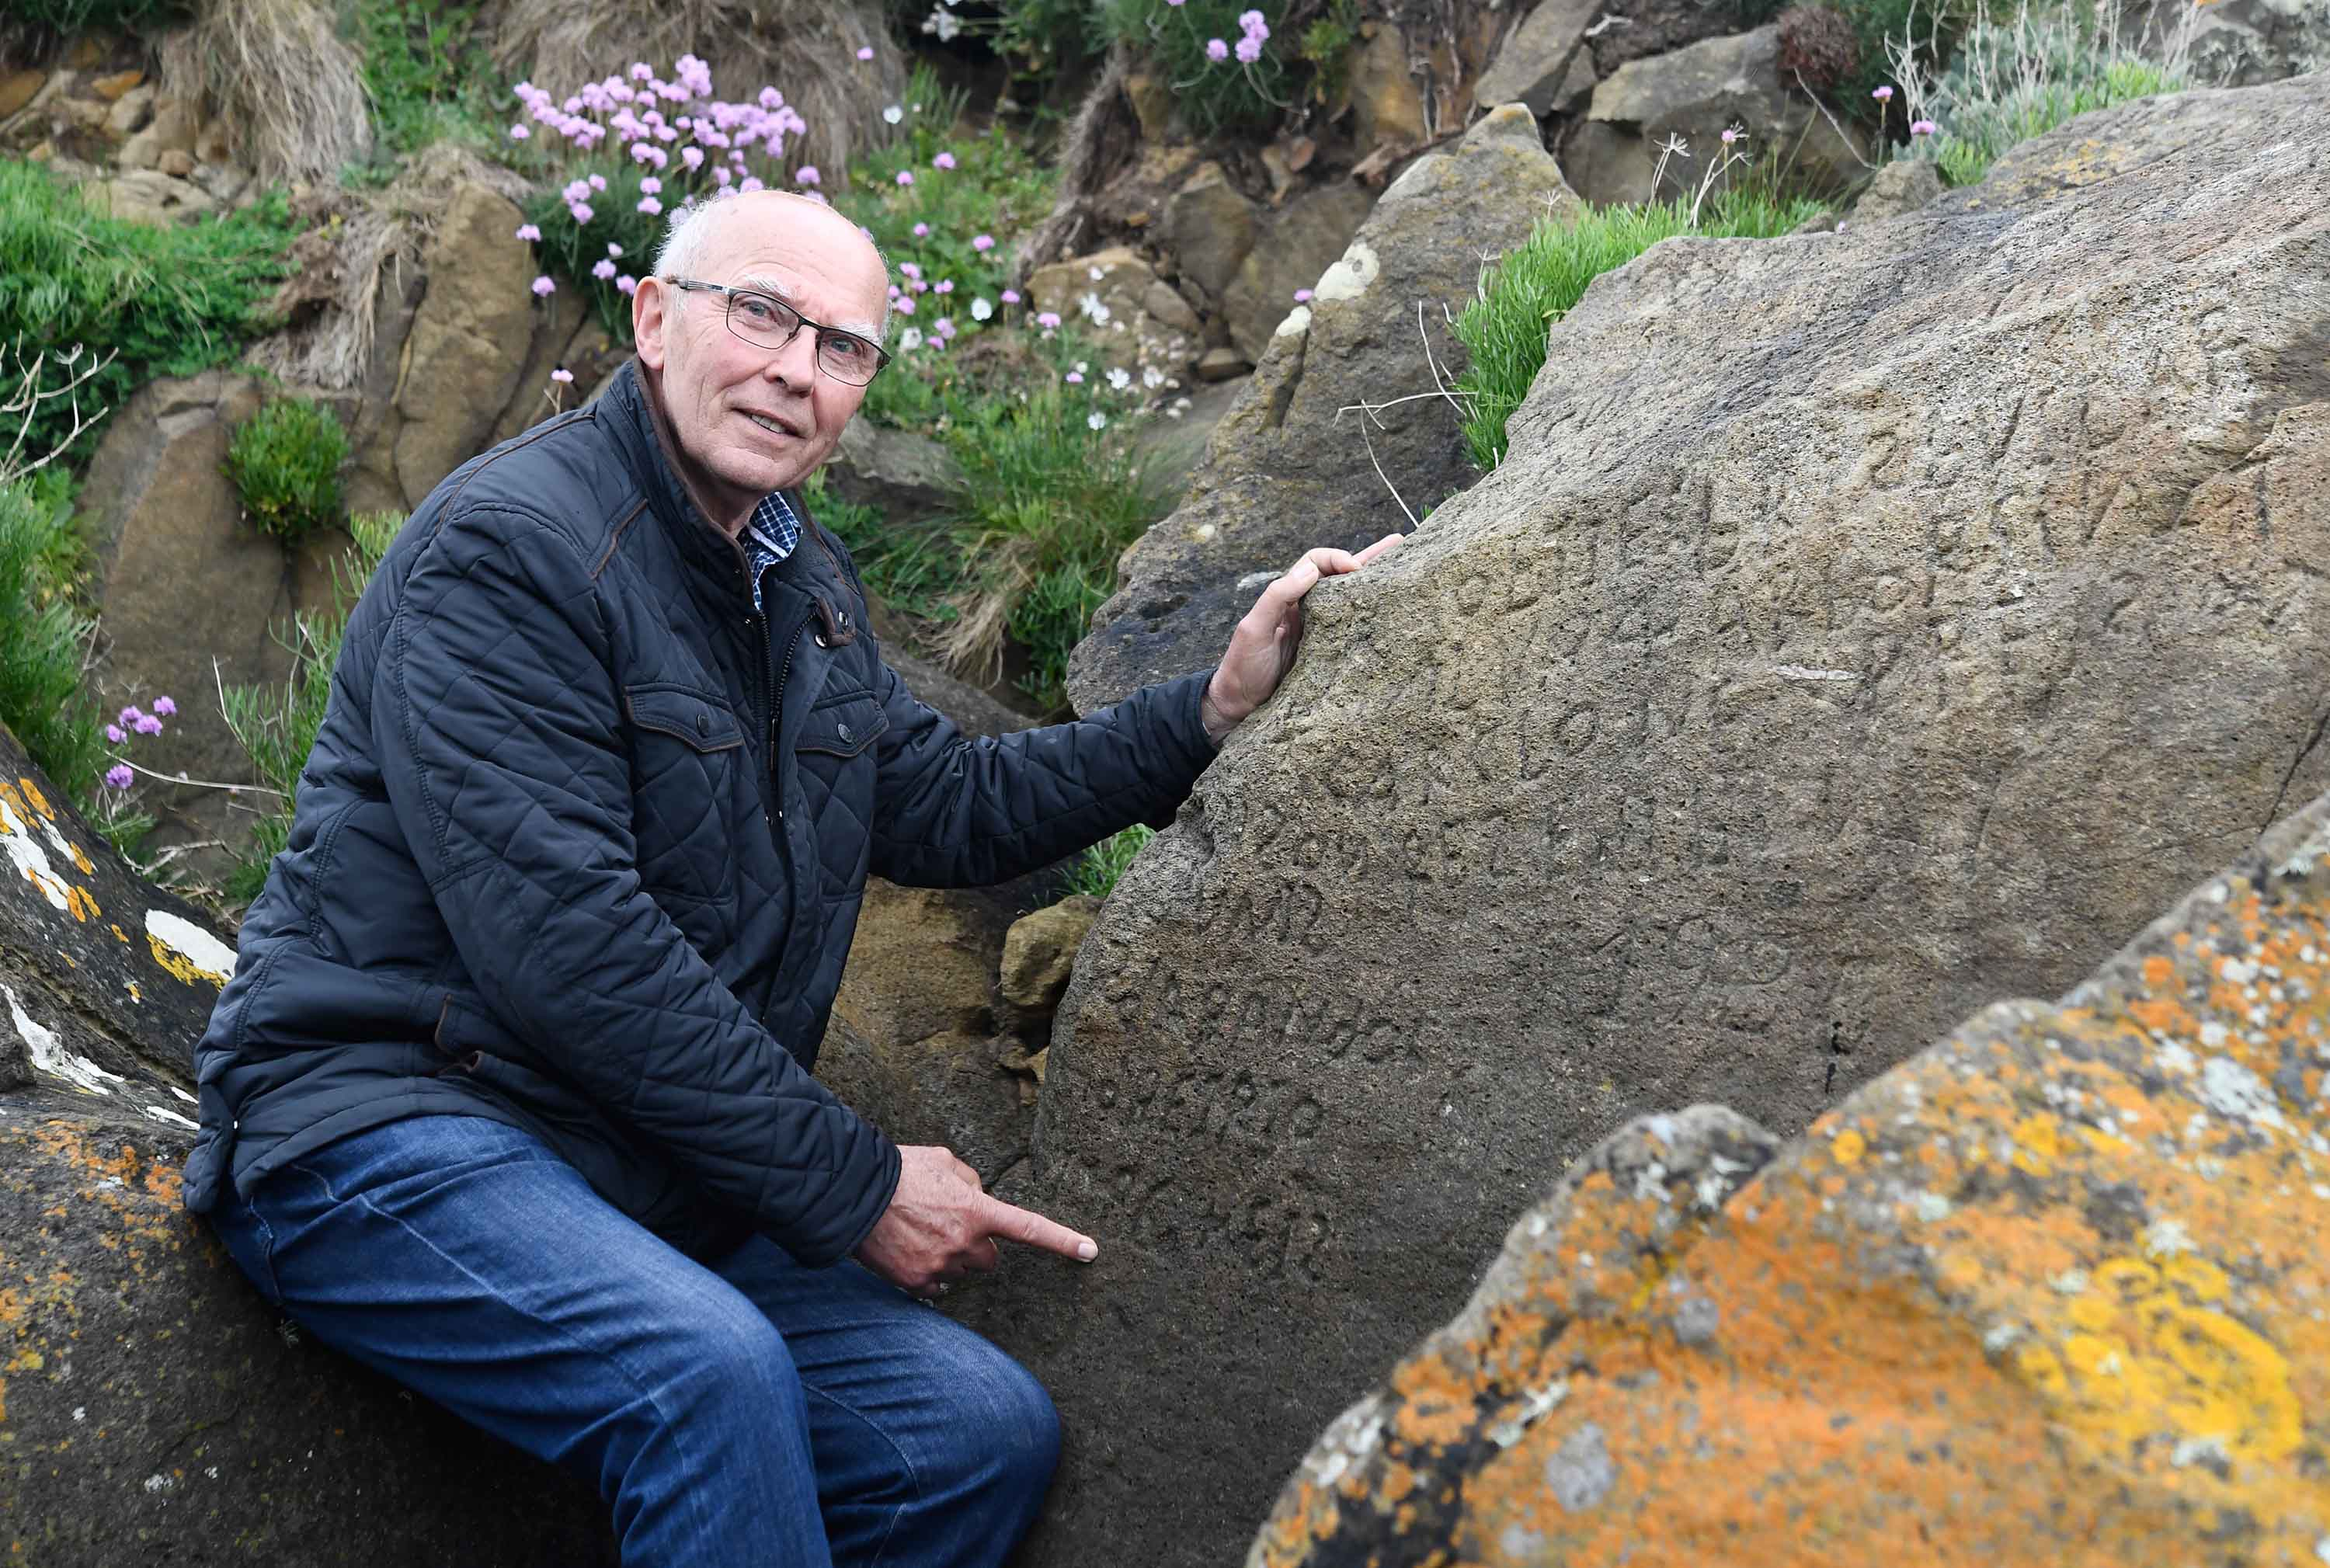 Blog Archive » Breton village offers reward to decipher mysterious stone inscription